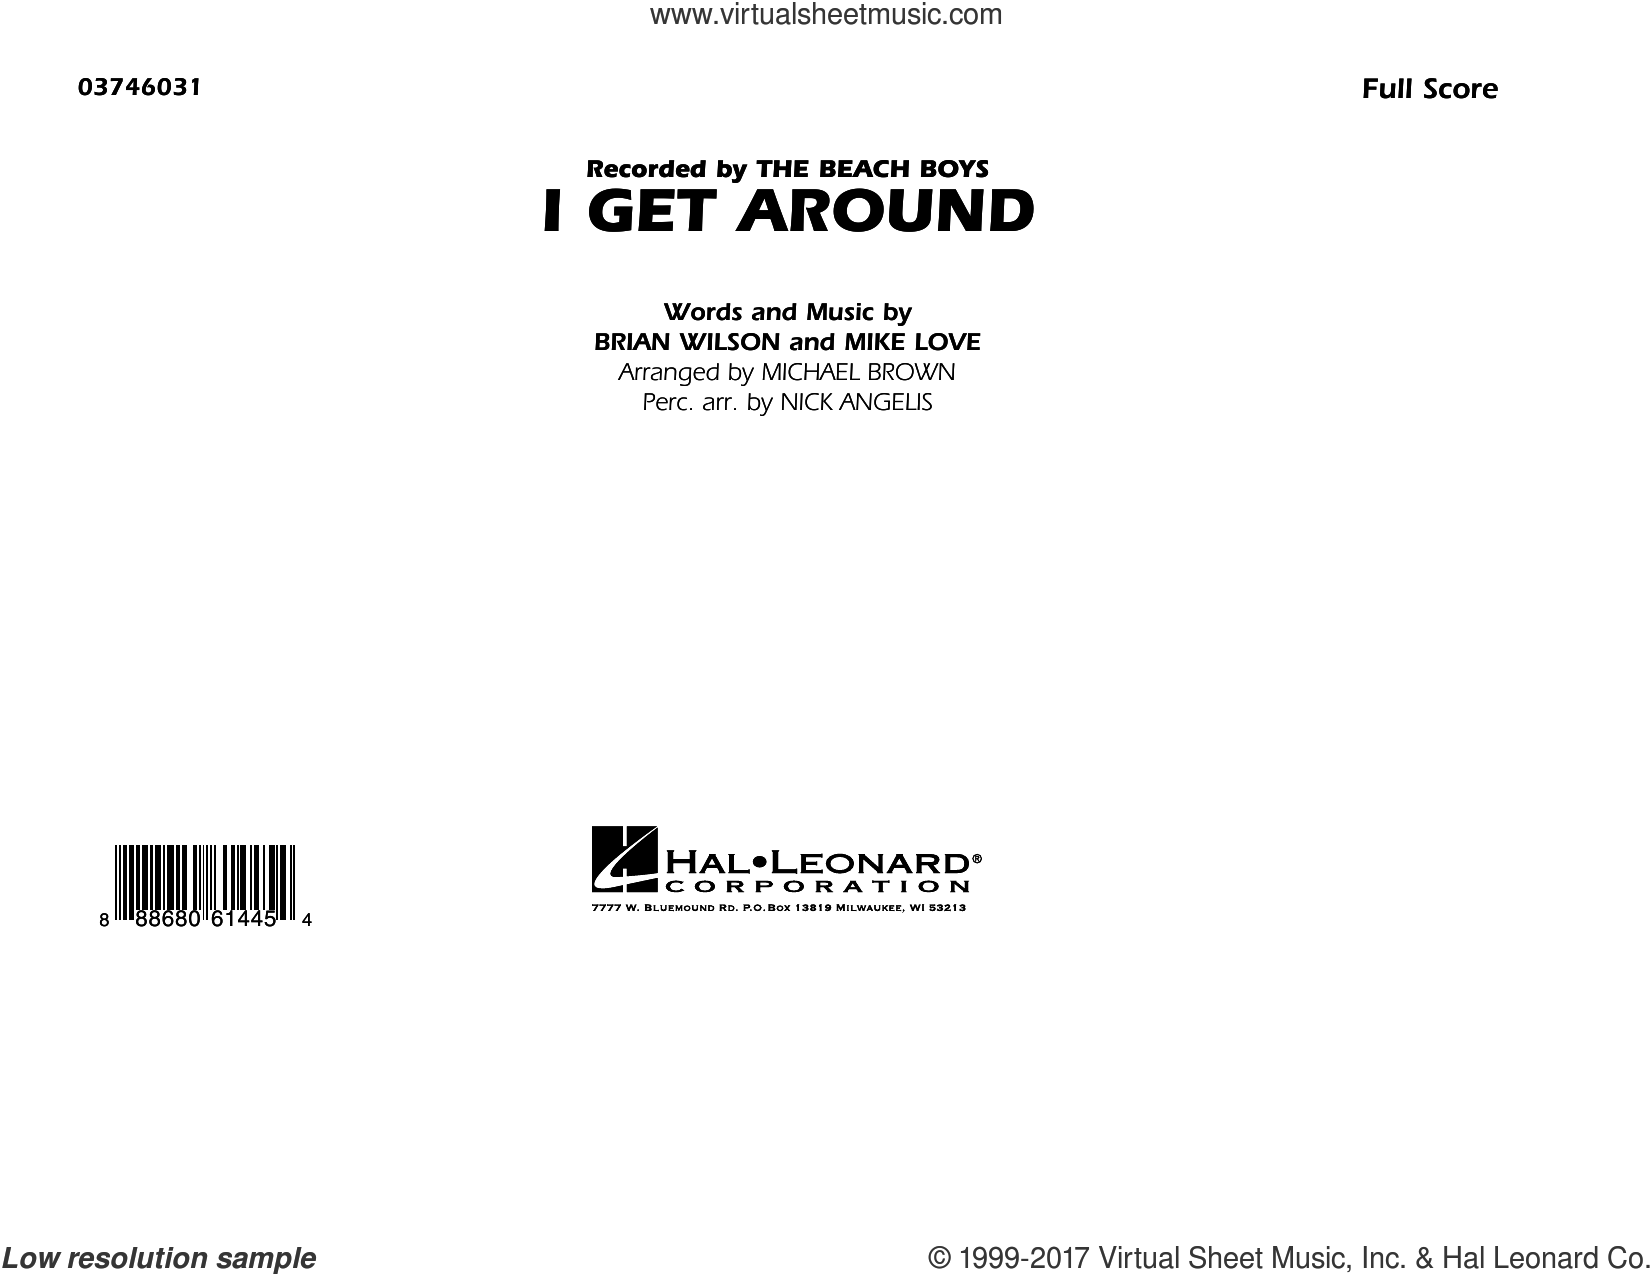 I Get Around (COMPLETE) sheet music for marching band by The Beach Boys, Brian Wilson, Michael Brown, Mike Love and Nick Angelis, intermediate